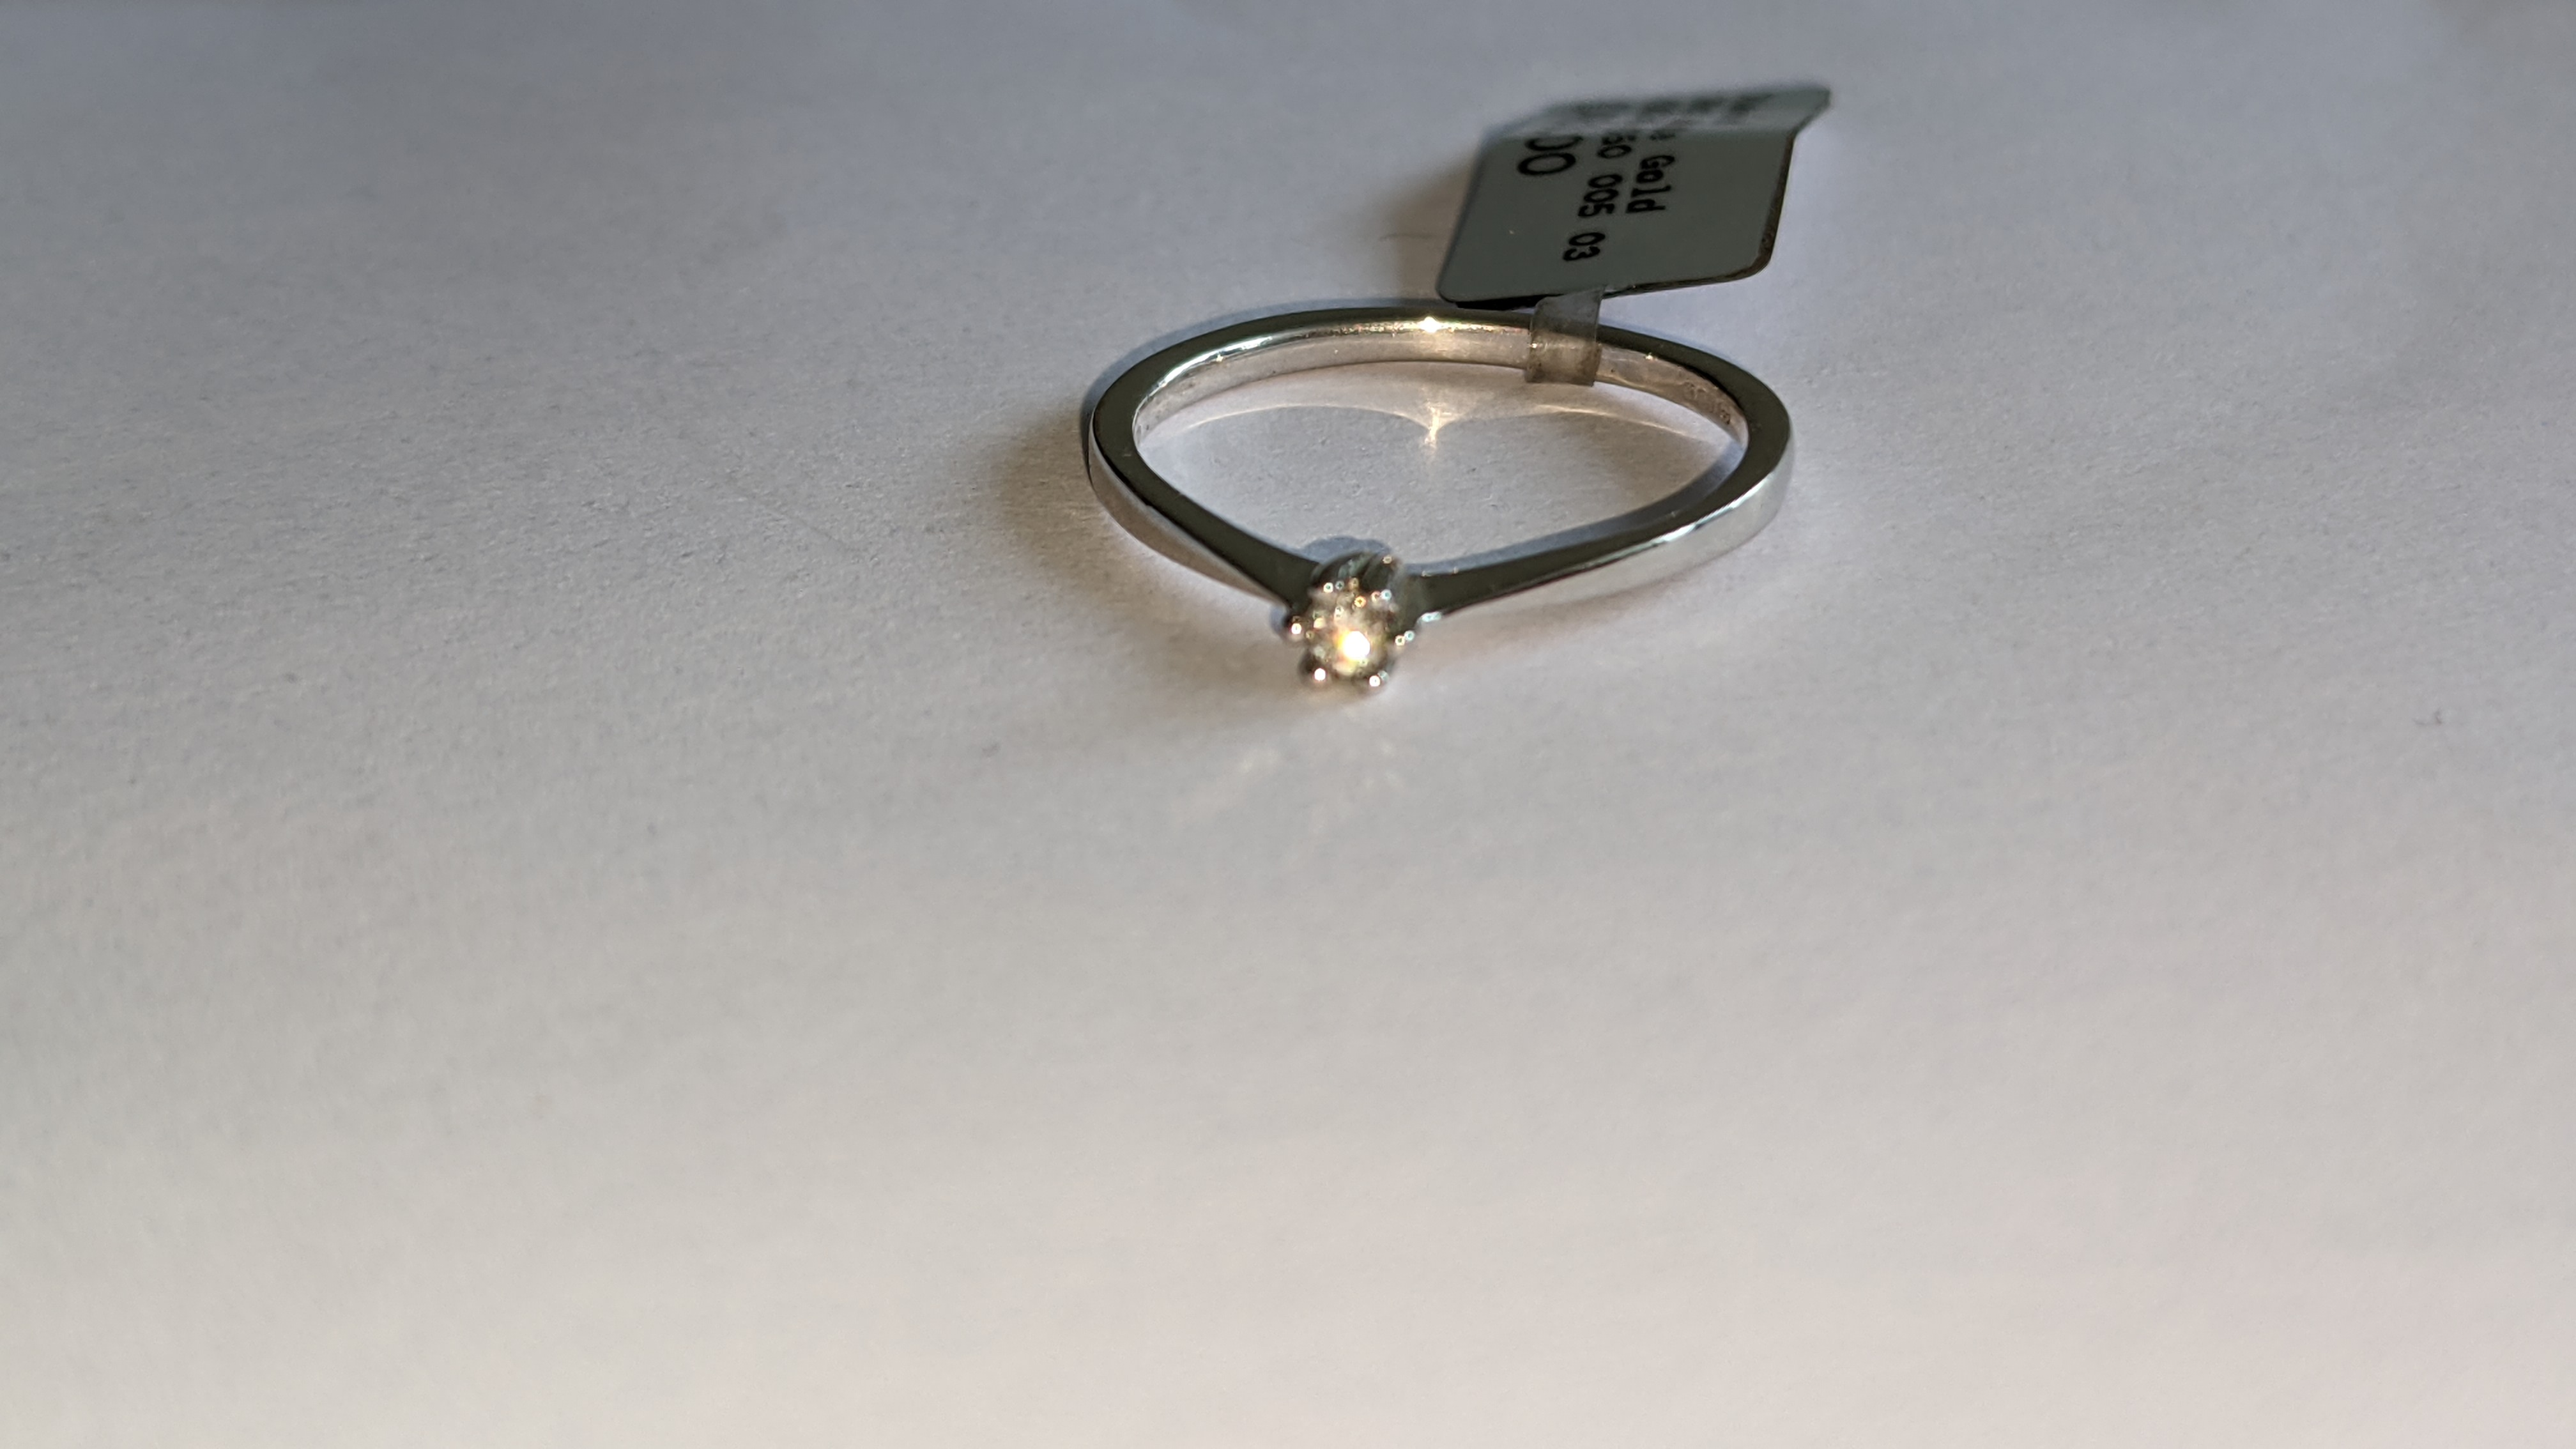 18ct white gold ring with central 0.05ct diamond. RRP £461 - Image 9 of 16